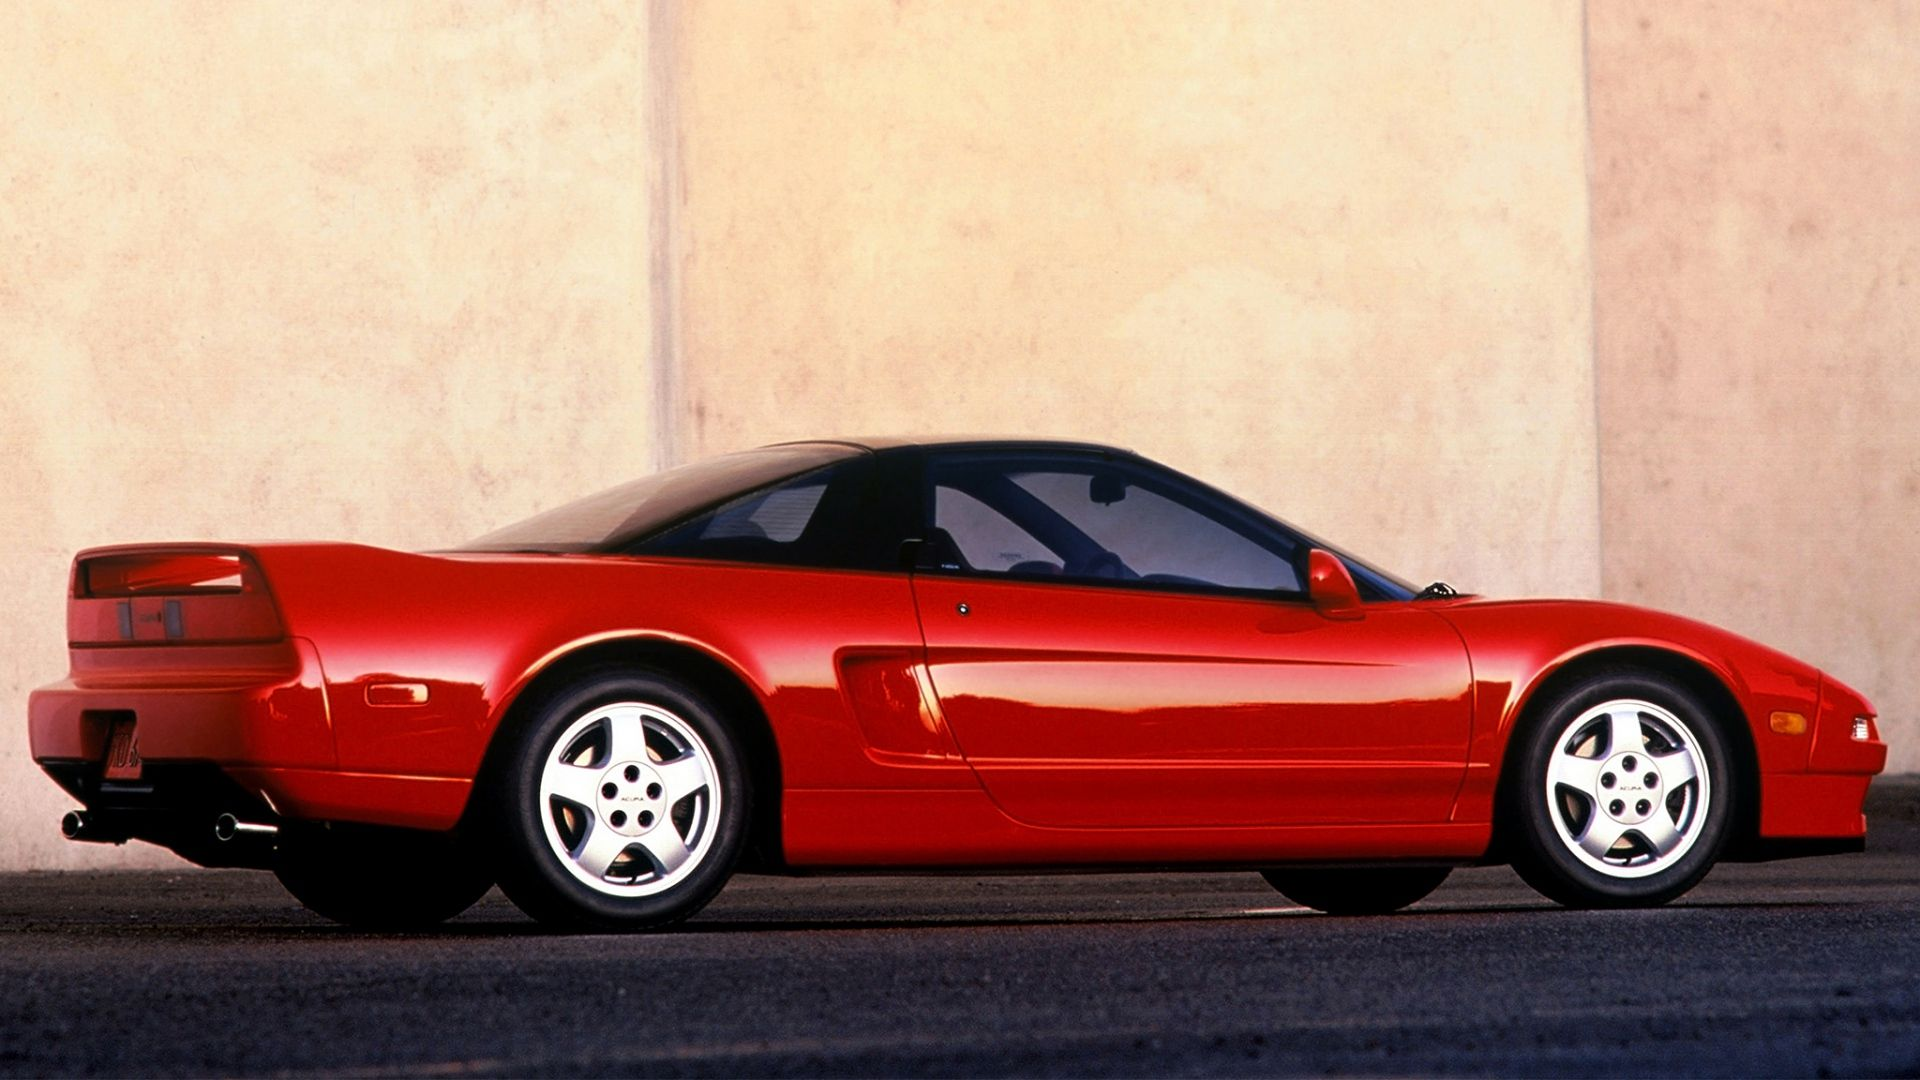 Download Wallpaper 1920x1080 Red Side View Acura Nsx Sports Style Cars Full Hd 1080p Hd Background Nsx Acura Sports Car Acura